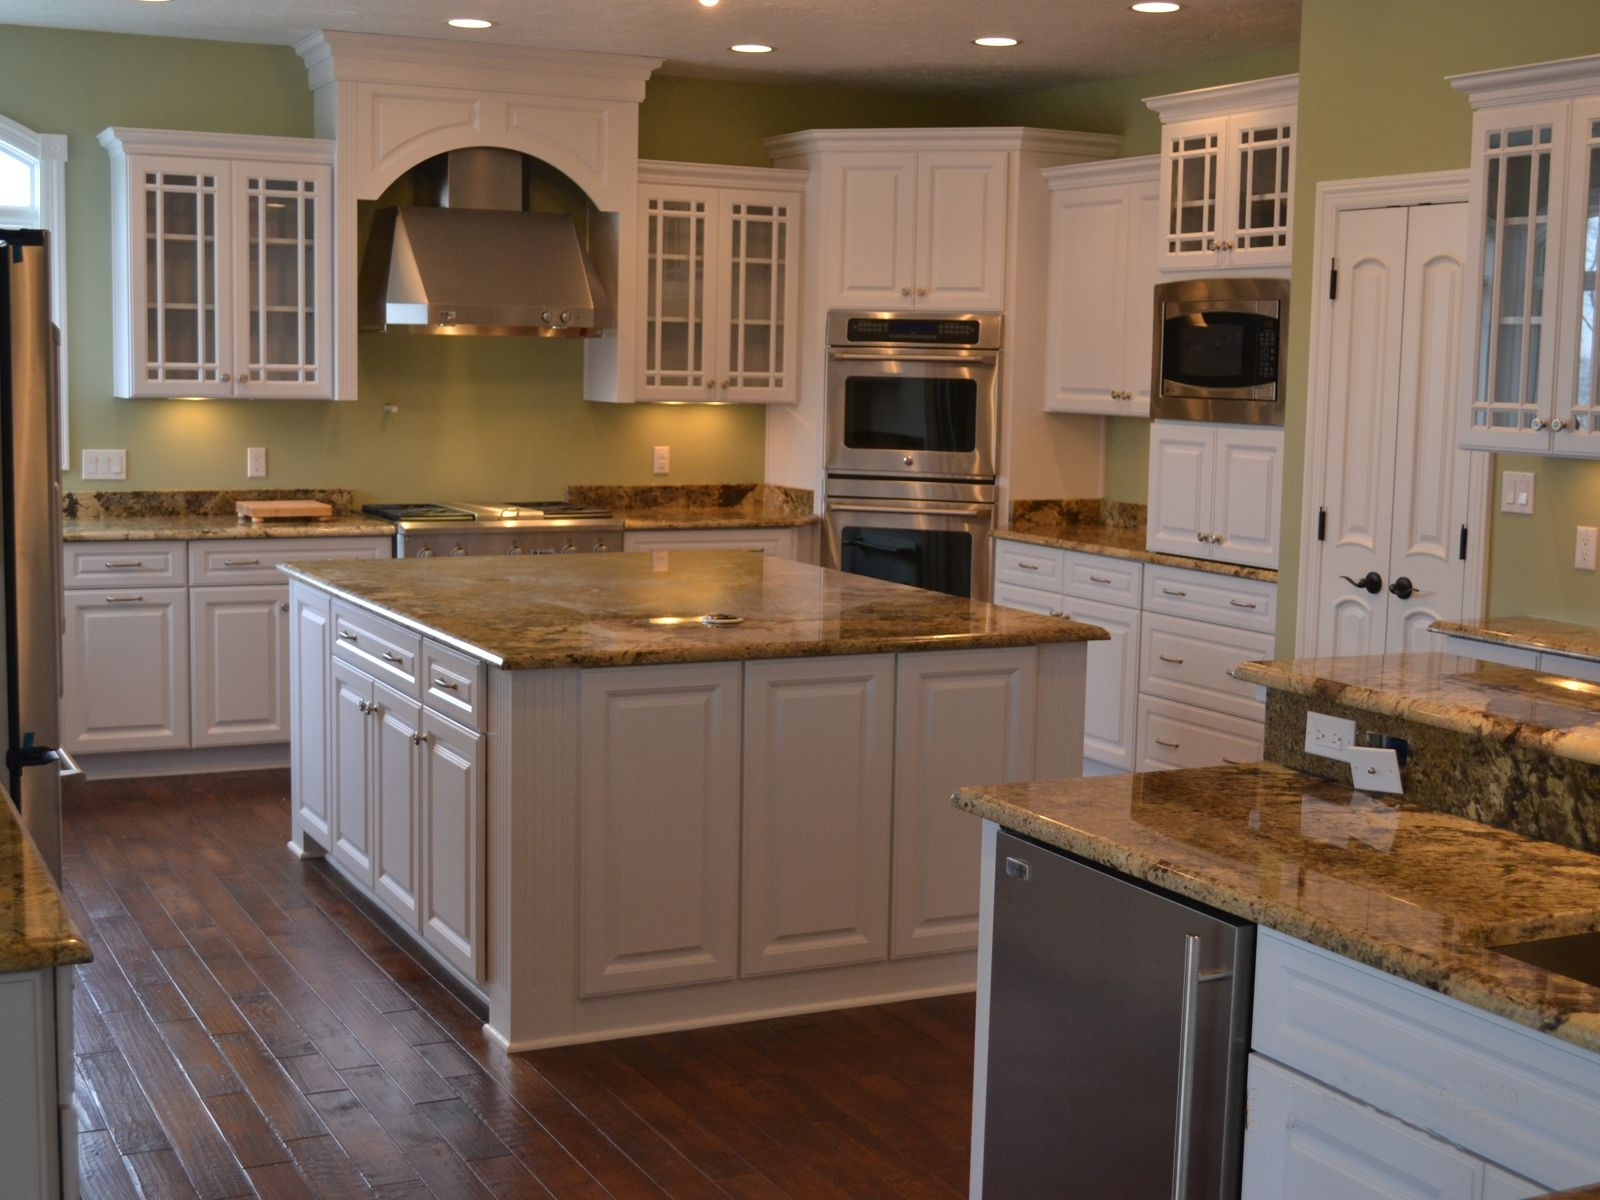 Kitchen Cabinets Pittsburgh Pennsylvaniakitchen bathroom contractor pittsburgh pa granite countertops